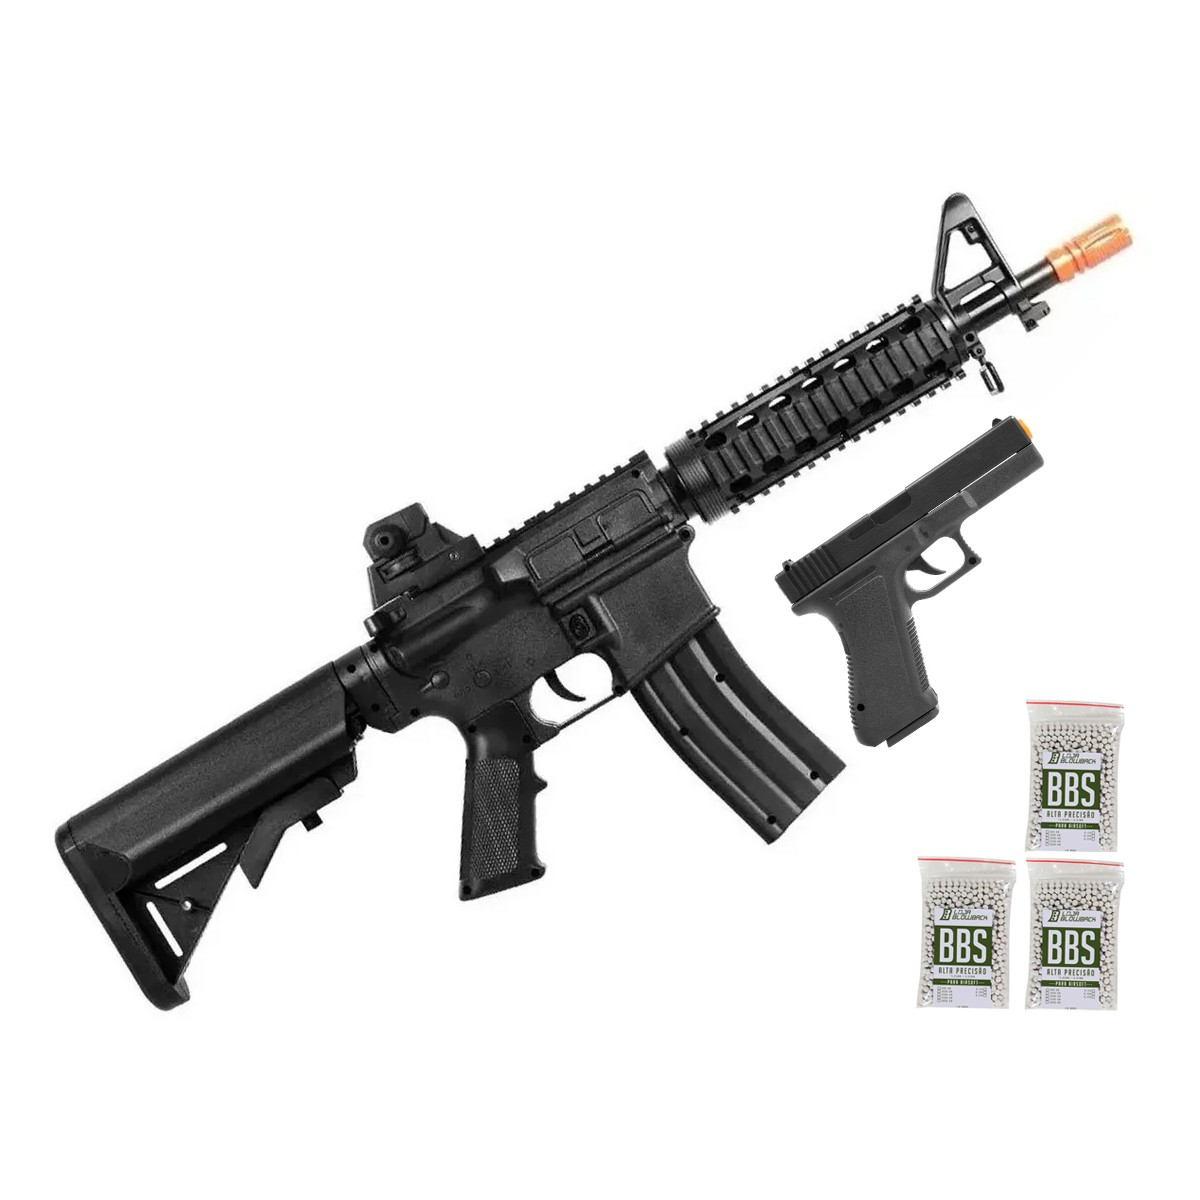 Airsoft Kit Pistola E Rifle M4a1 E Glock V307 Mola 6mm Kit 3